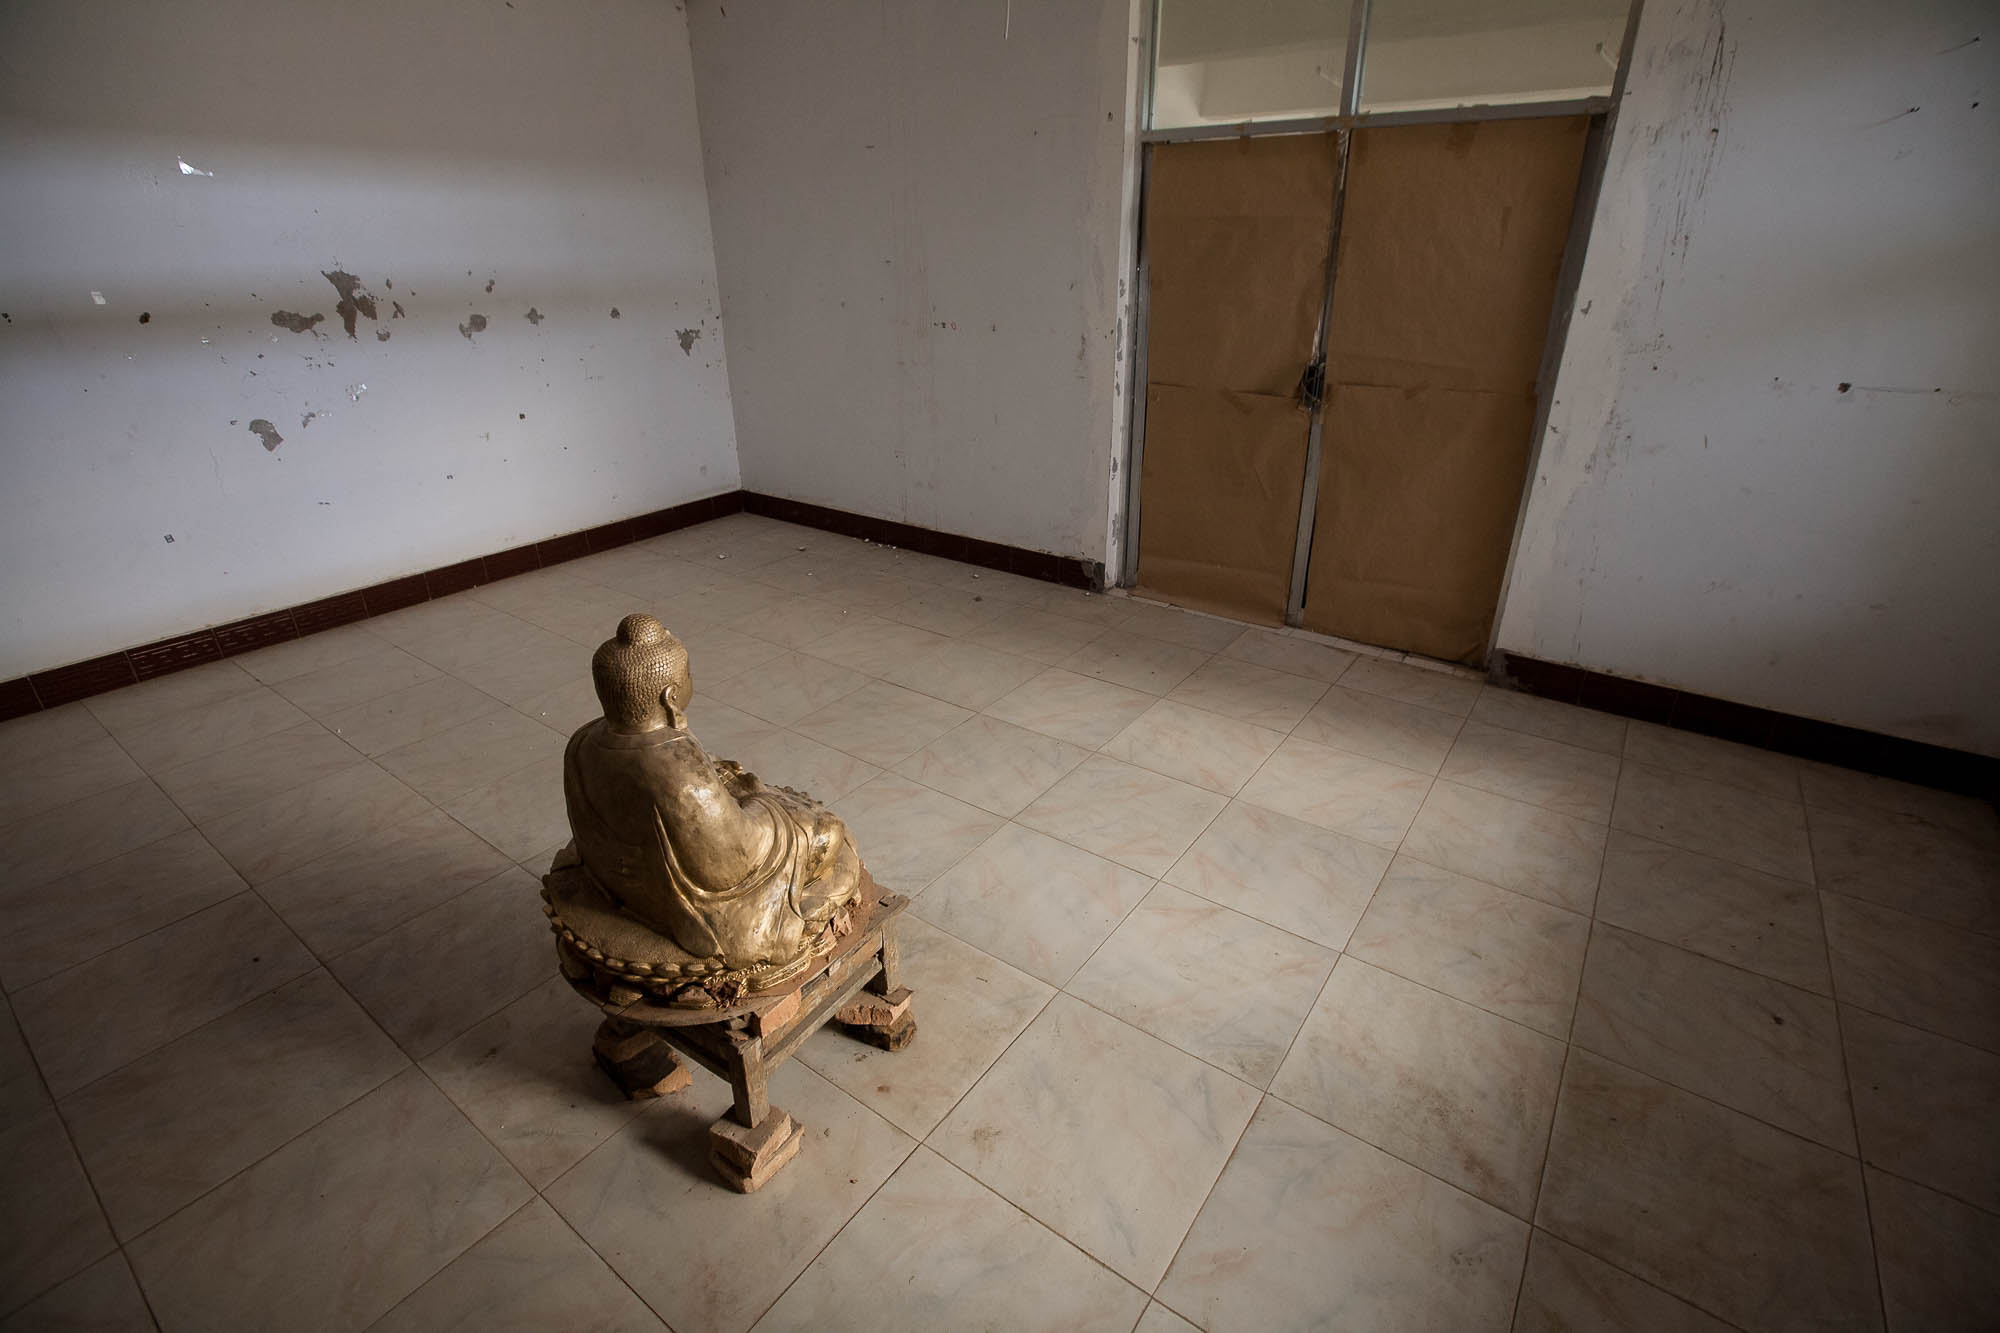 Buddha in a room